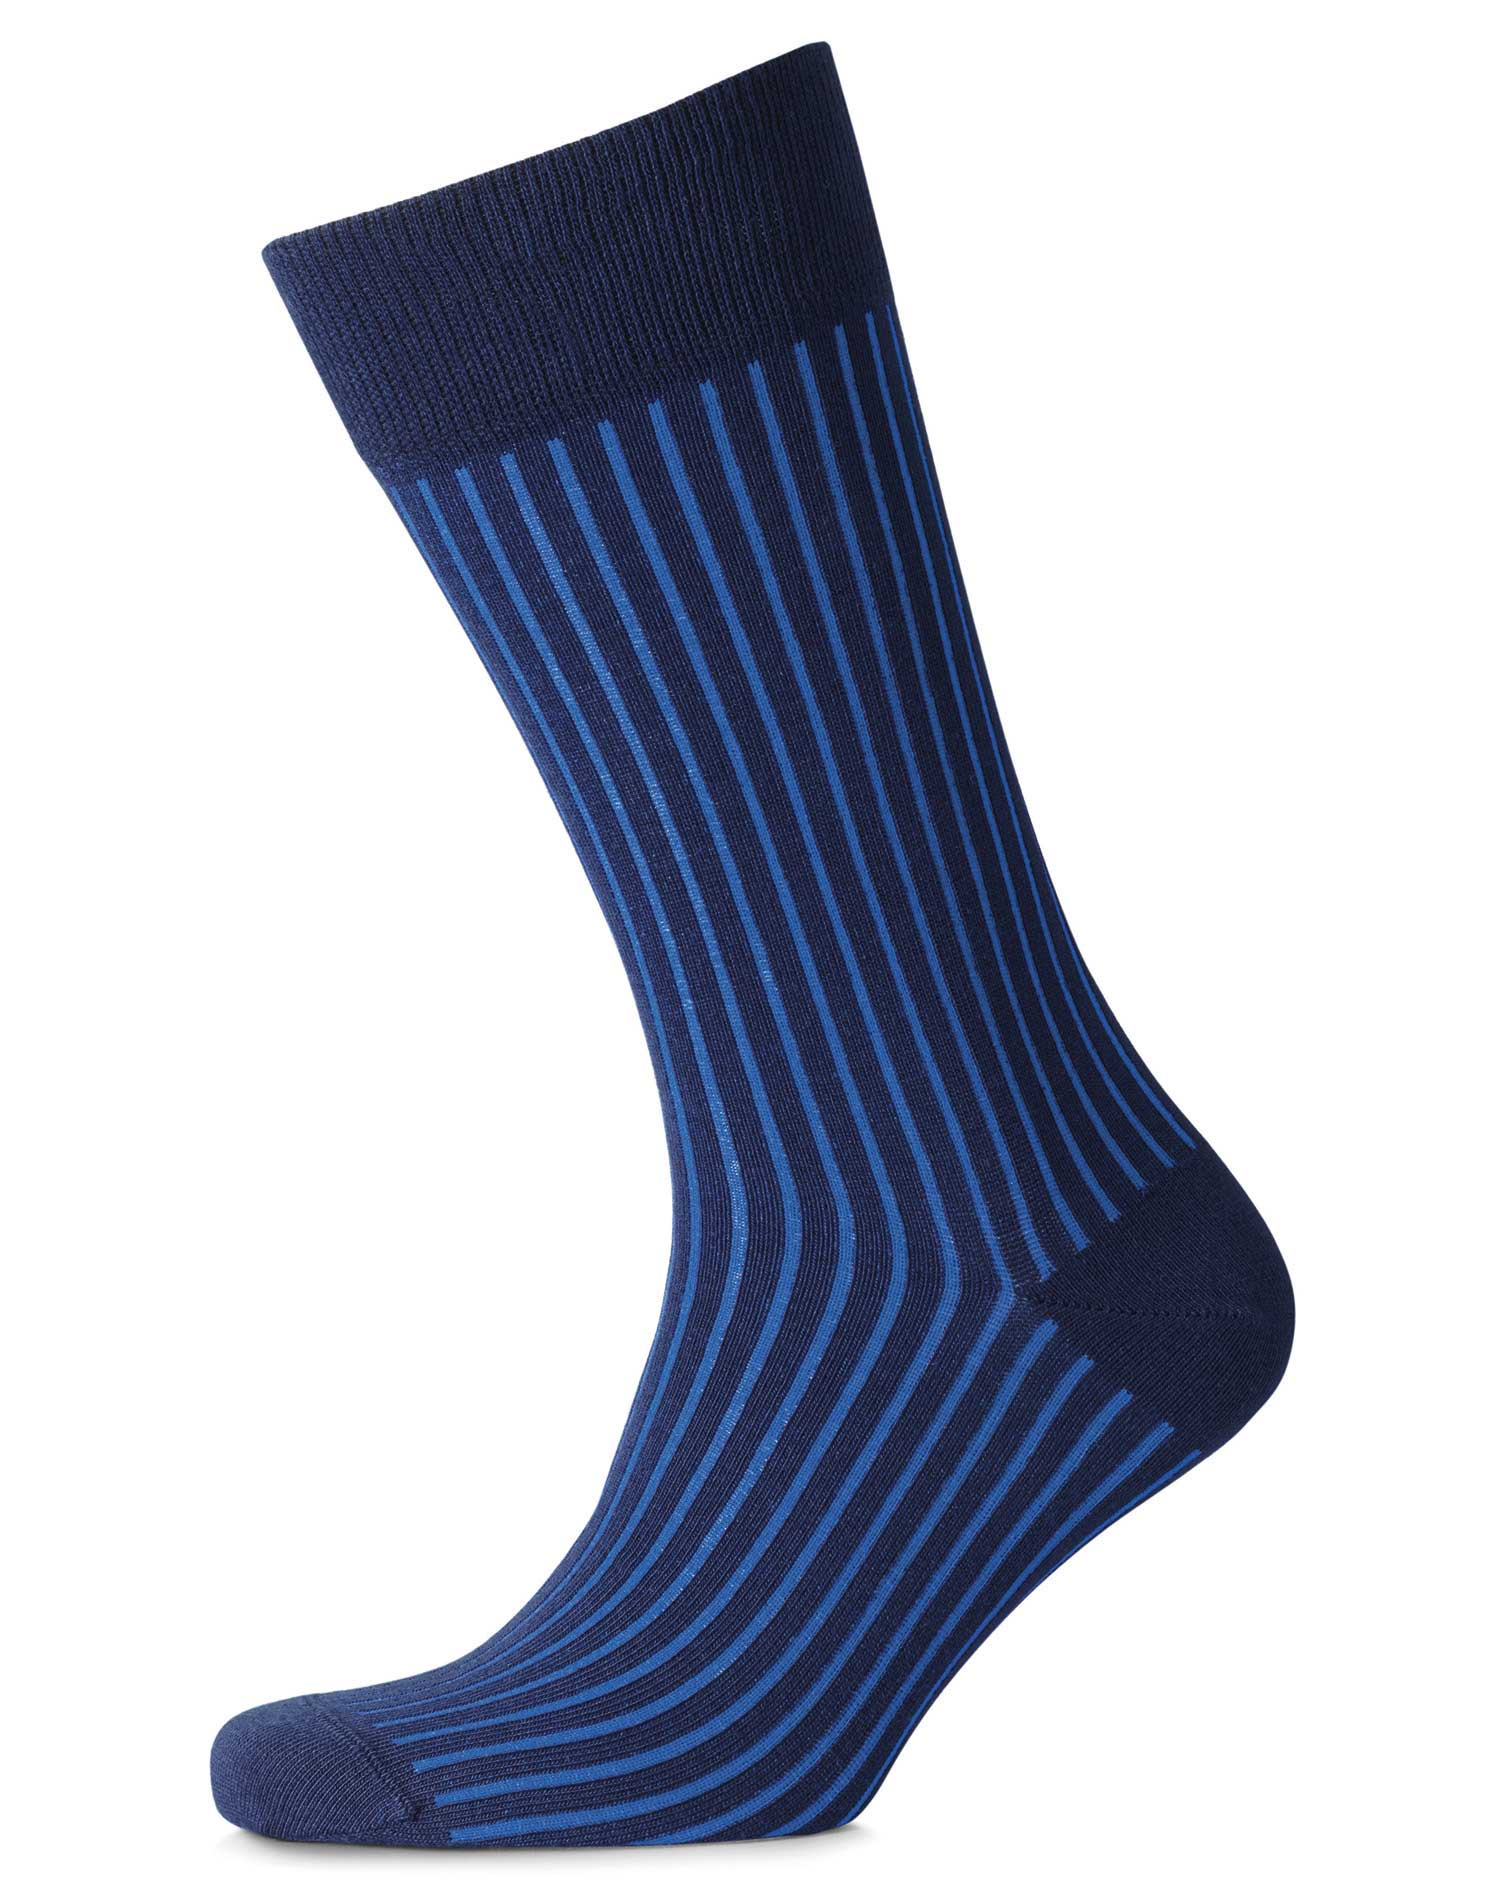 navy and blue vertical stripe socks size medium by charles tyrwhitt